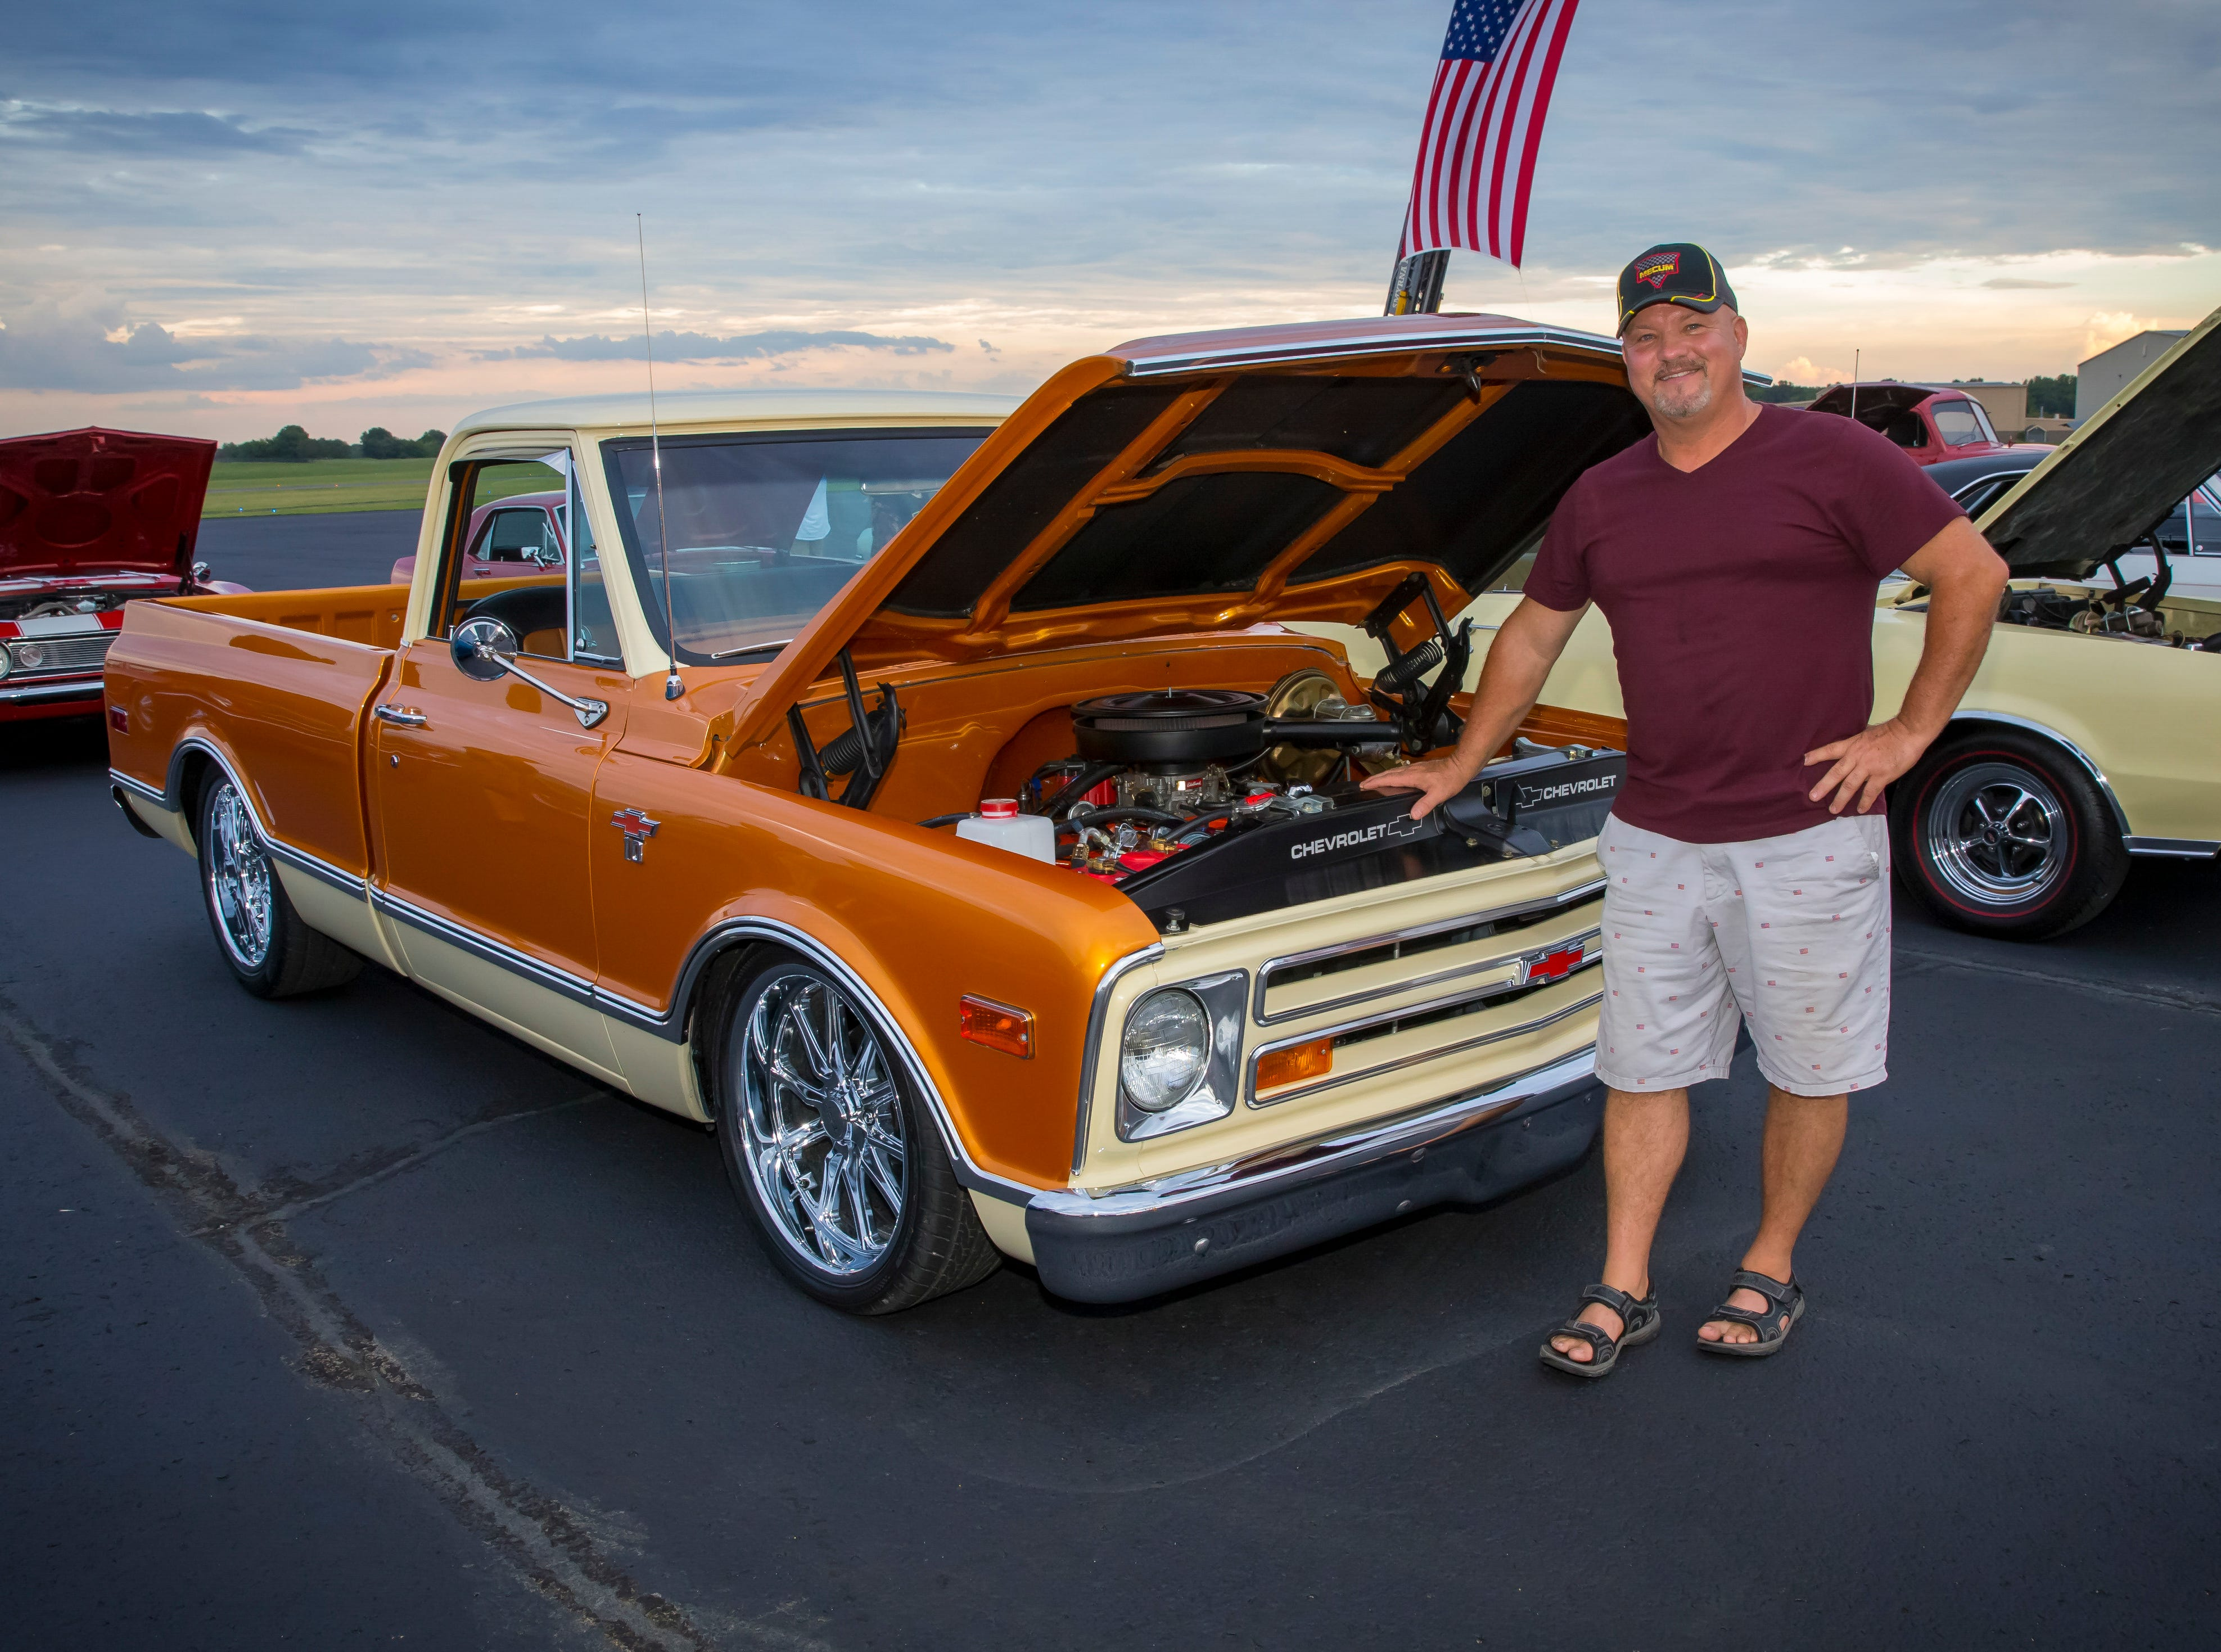 Chris Bratcher with his customized 1967 Chevy pickup at the Wings of Freedom Fish Fry hosted by Smyrna Rotary Club. The event was held Saturday, Sept. 8, 2018 at the Corporate Flight Management Hangar at Smyrna Airport.